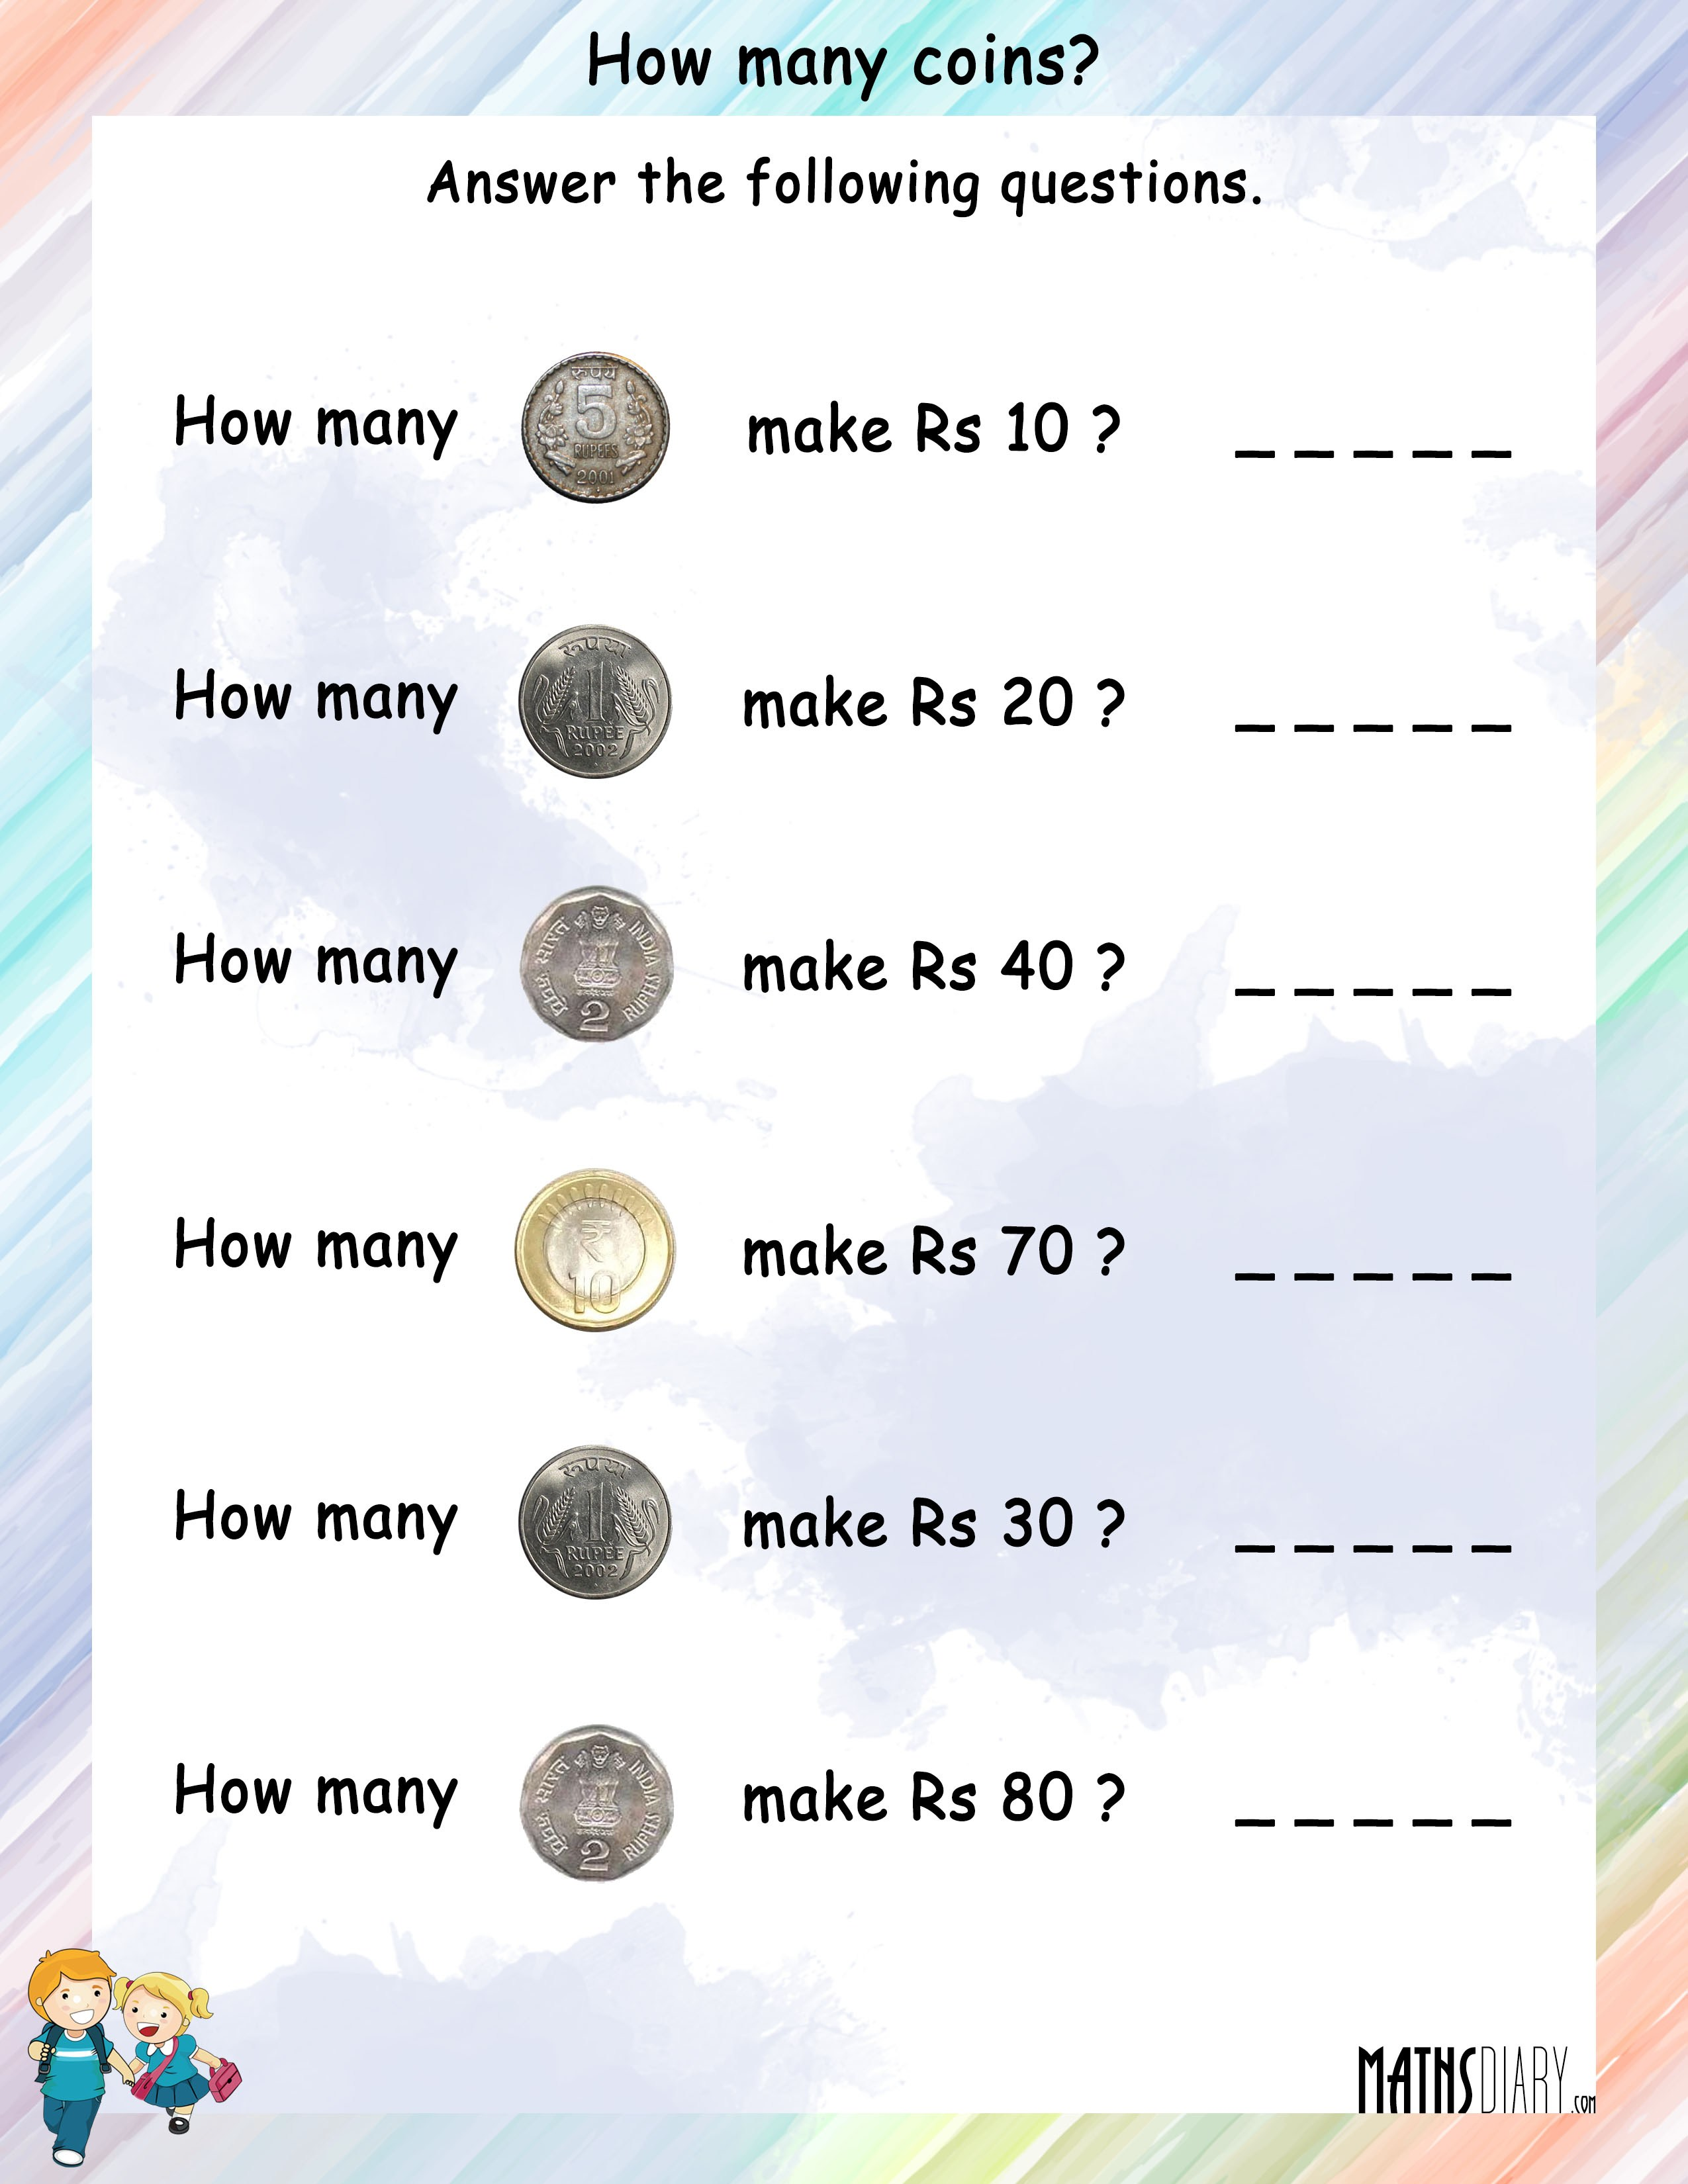 How Many Coins Makes Given Rupees